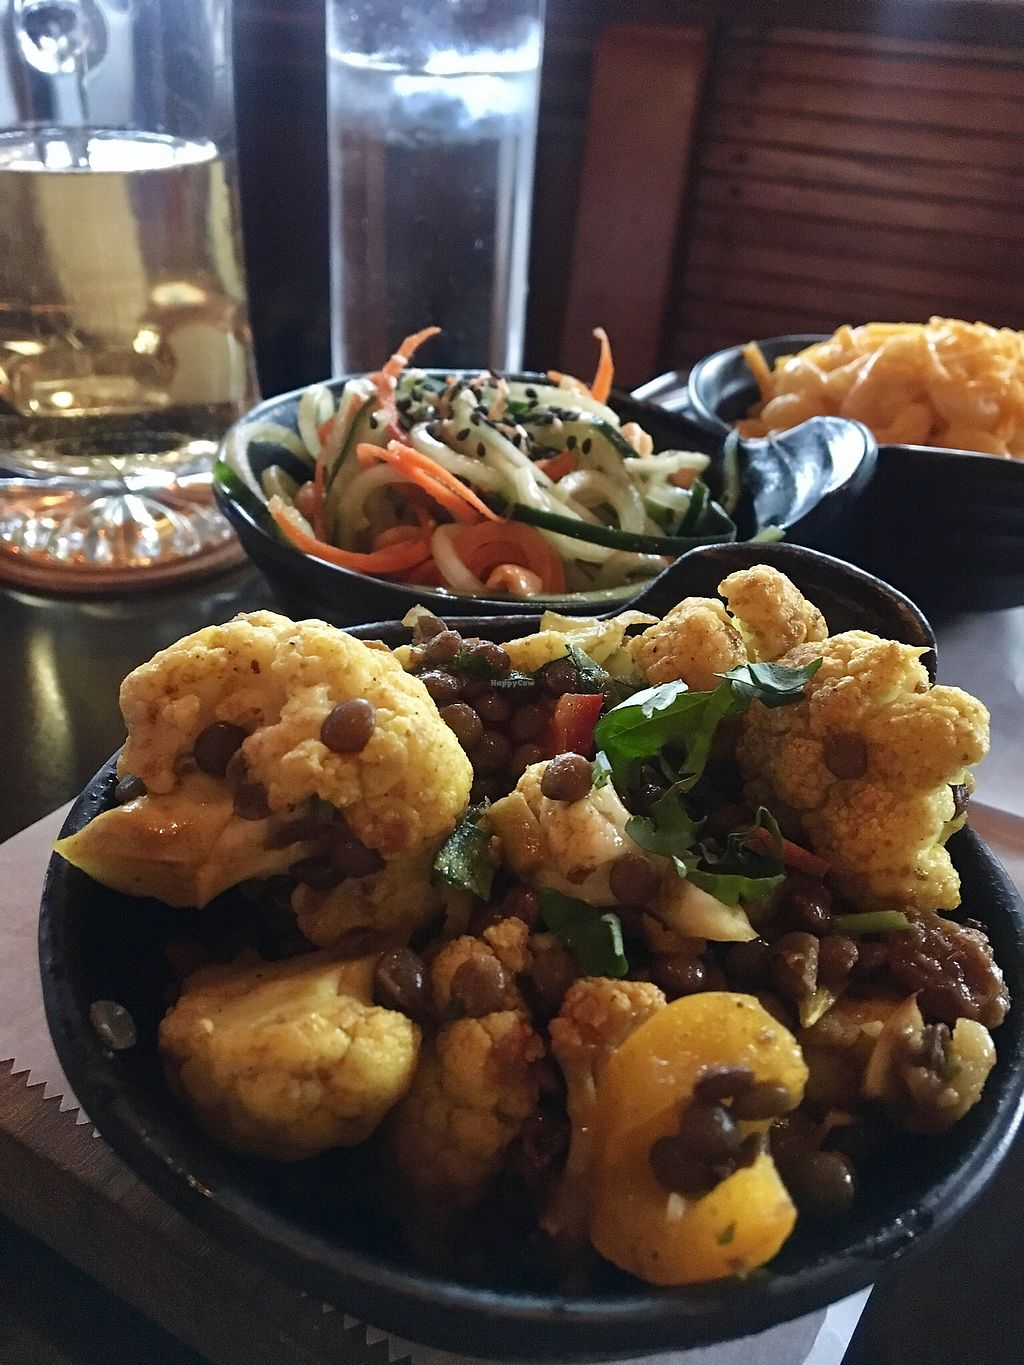 "Photo of Chappaqua Station  by <a href=""/members/profile/LilMsVegan"">LilMsVegan</a> <br/>Curried lentil cauliflower with the cucumber salad and Mac and cheese in the background <br/> April 13, 2018  - <a href='/contact/abuse/image/116897/384810'>Report</a>"